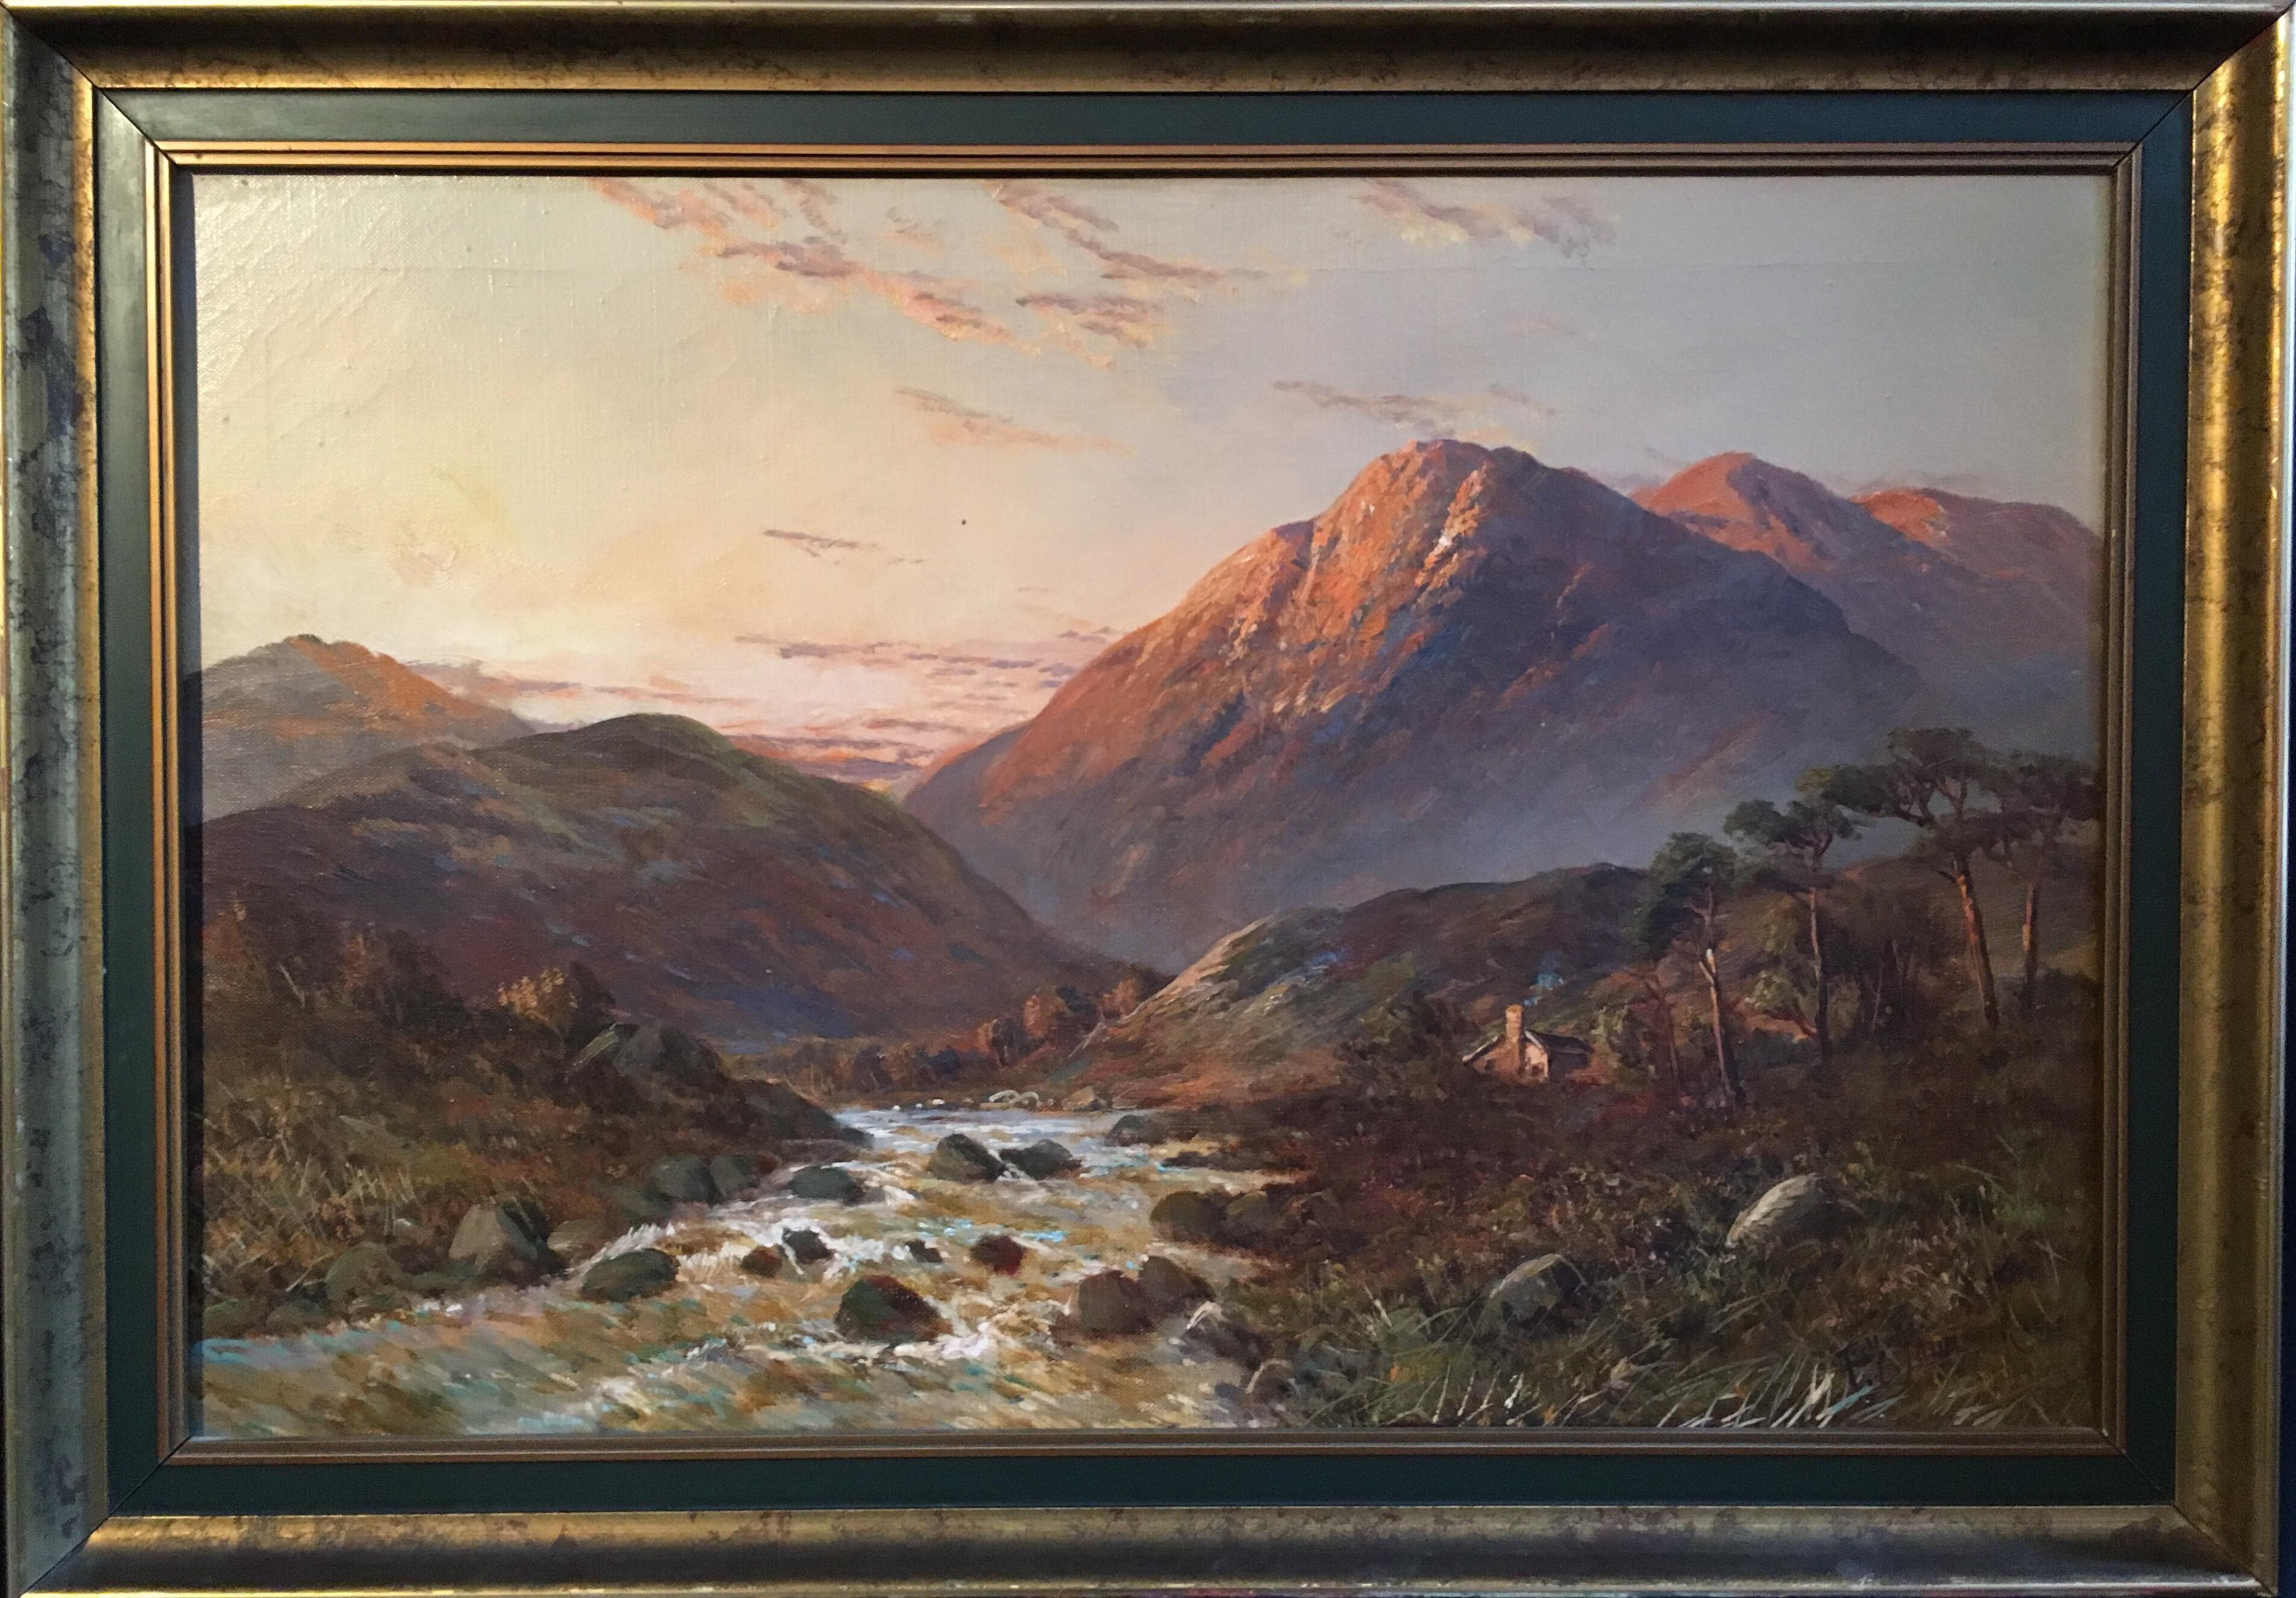 Sunset over Scottish Highlands 'Allan Waters', signed oil painting